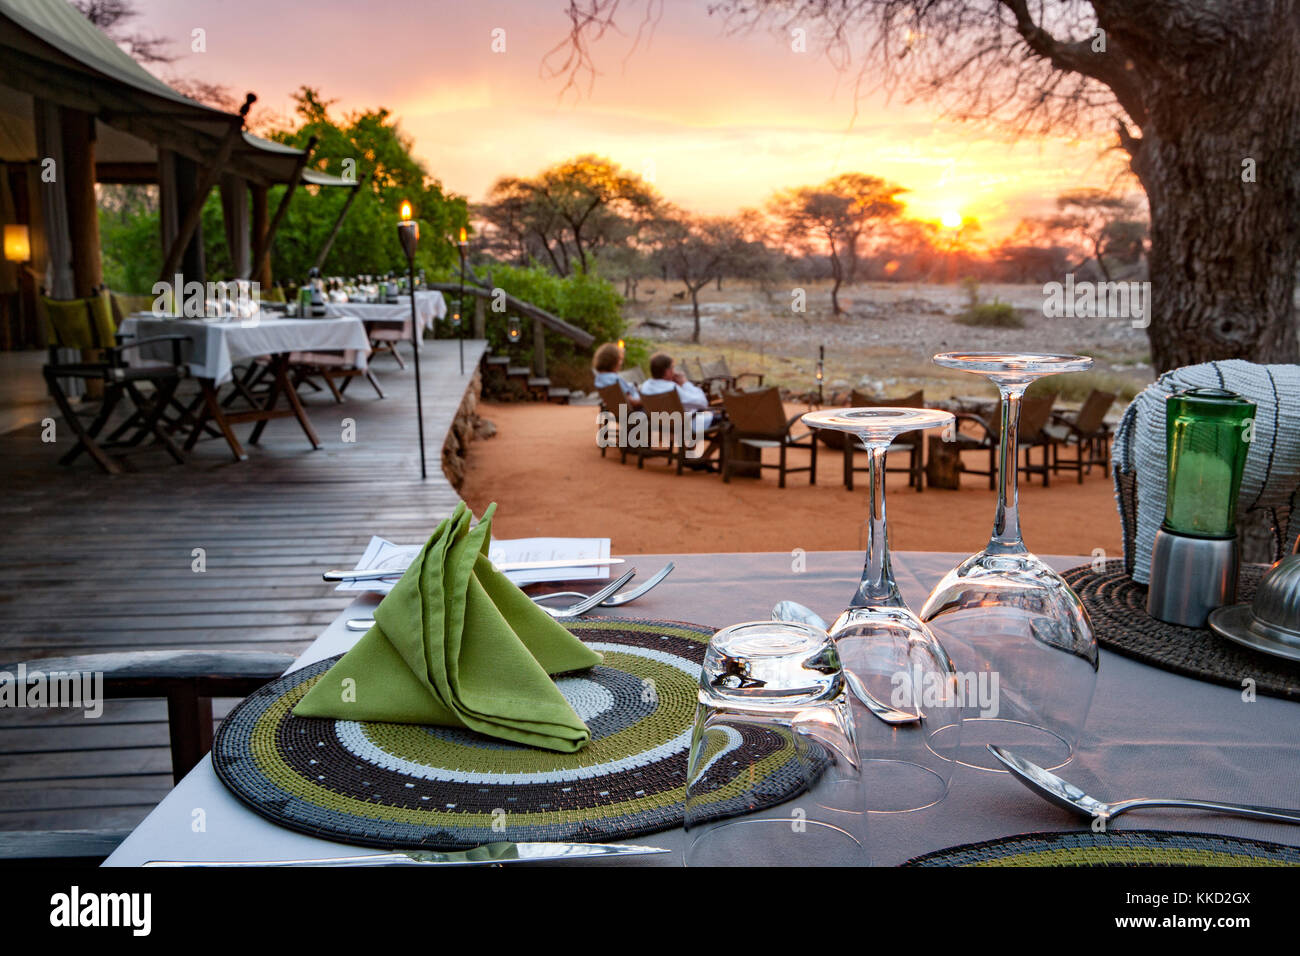 Outdoor Dining at Onguma Tented Camp, Onguma Game Reserve, Namibia, Africa - Stock Image